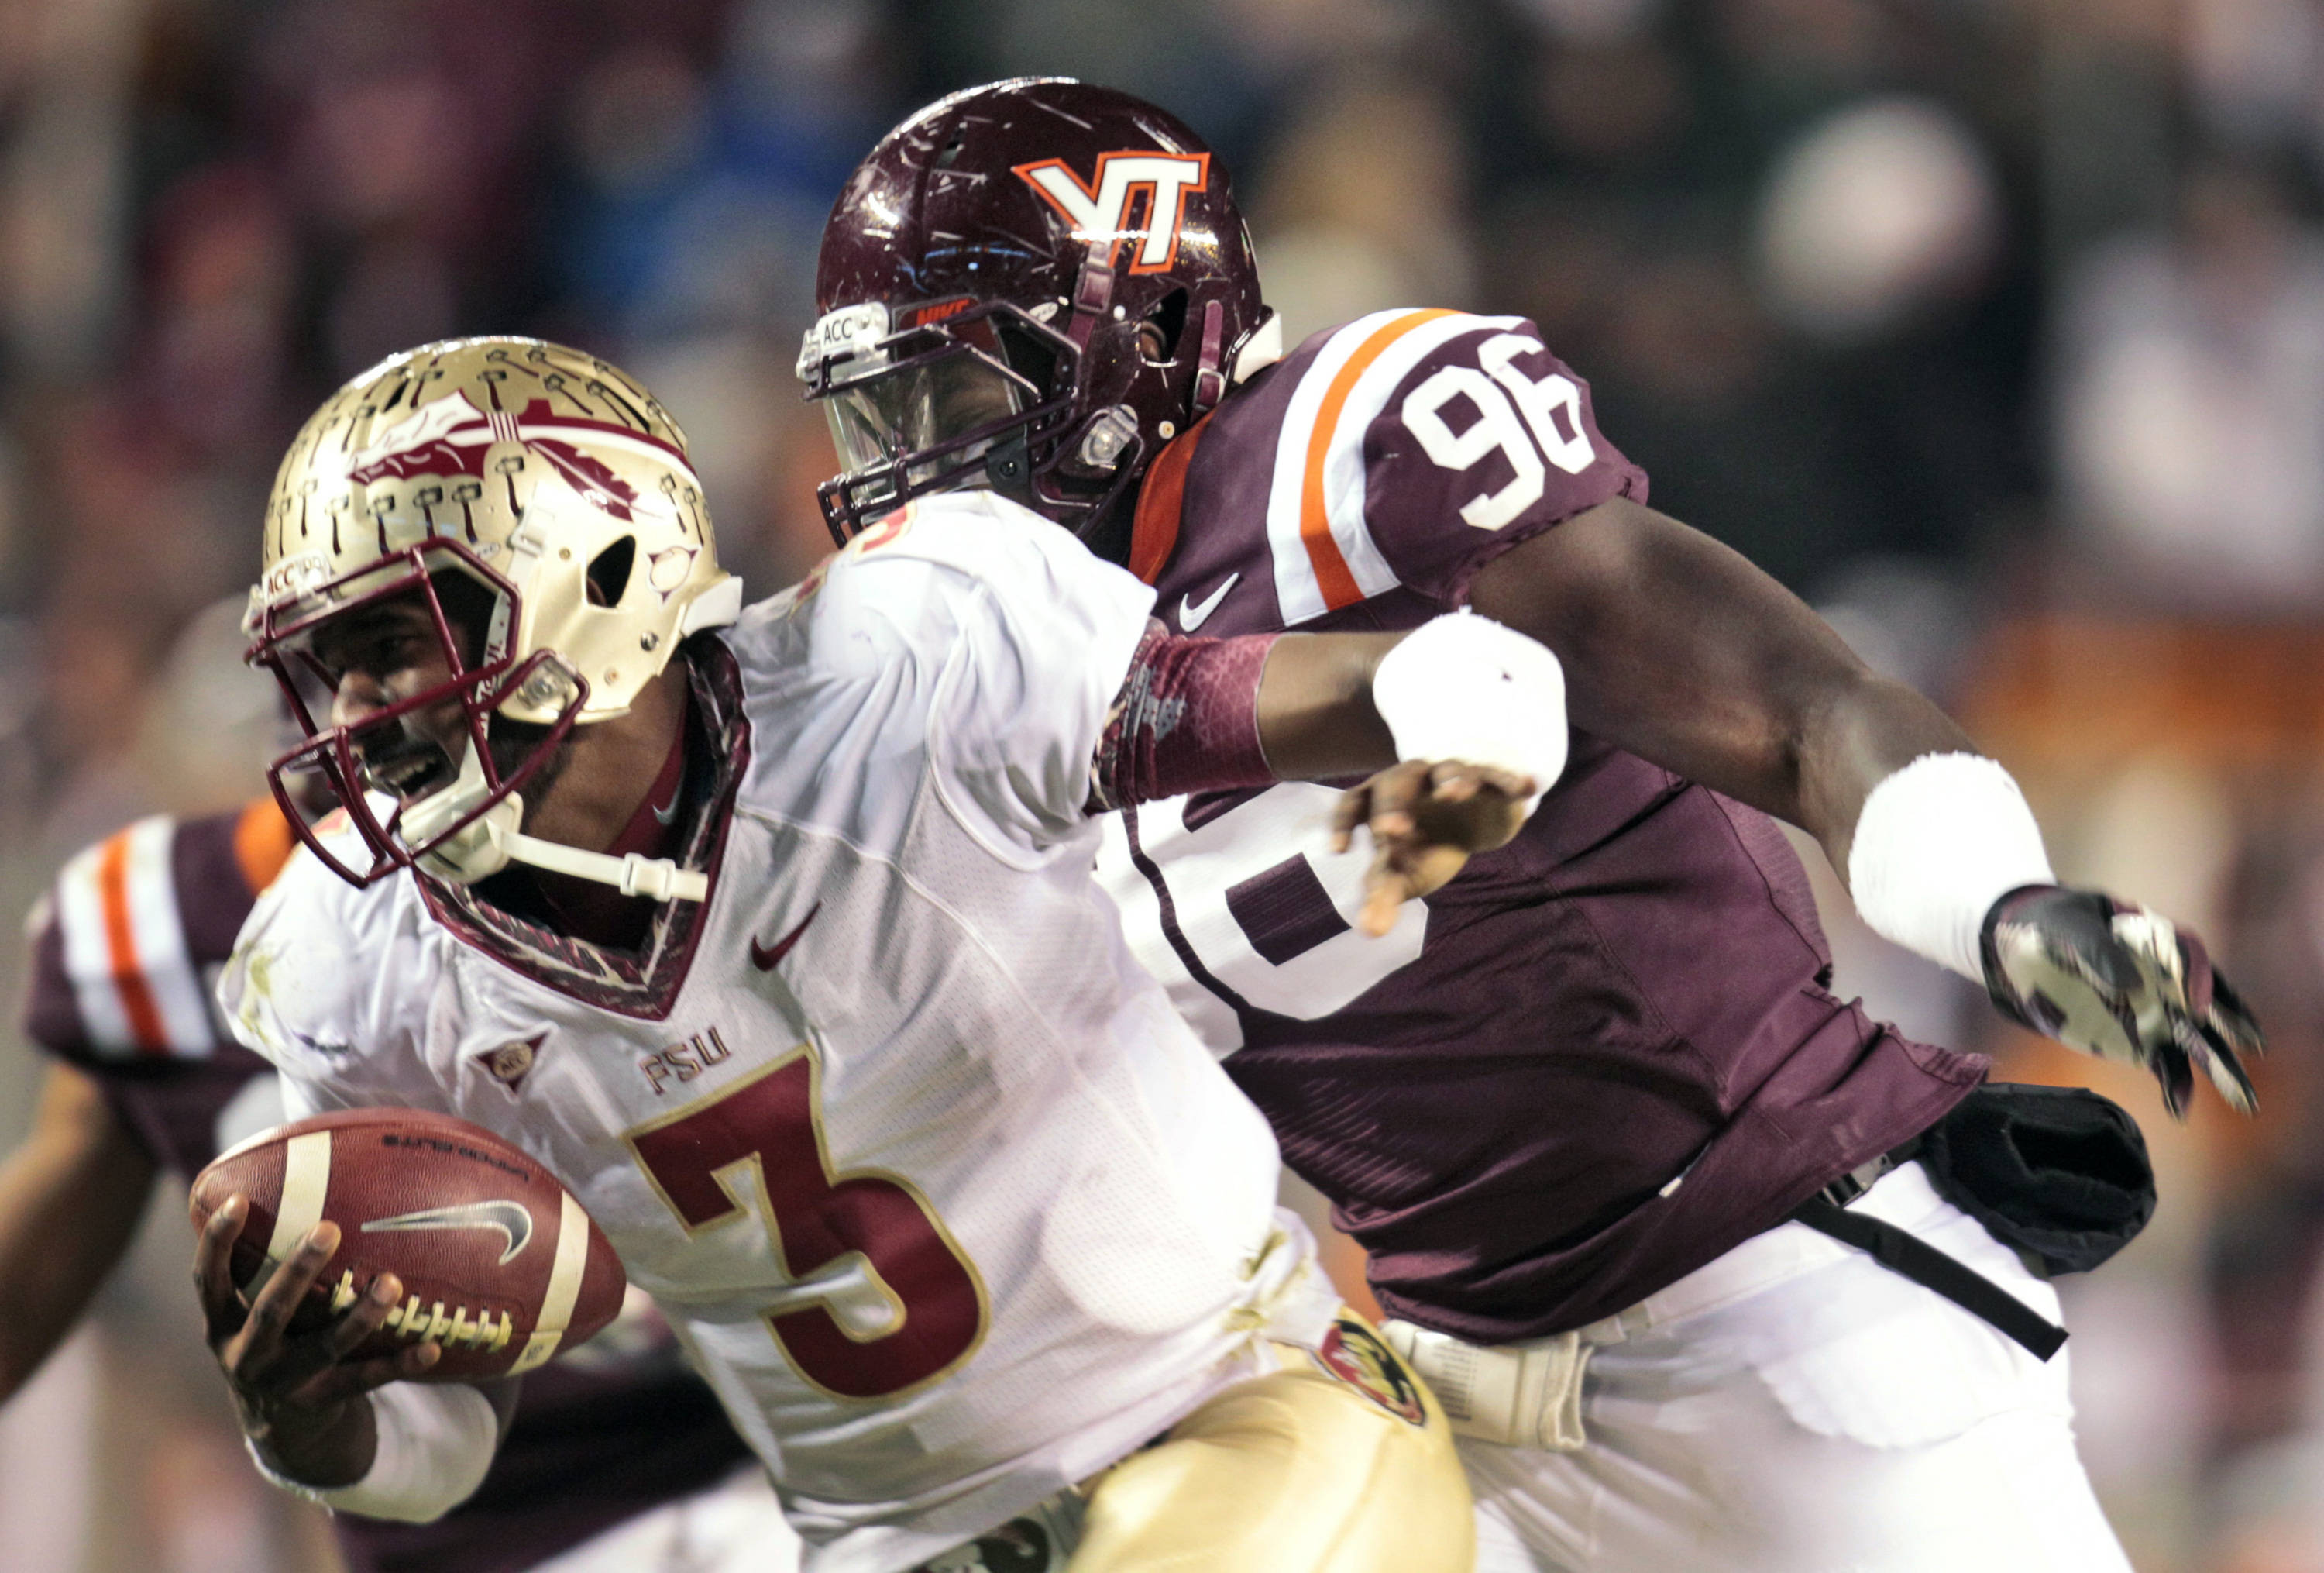 Florida State quarterback EJ Manuel (3) tries to get away from Virginia Tech defensive end Corey Marshall (96). (AP Photo/Steve Helber)